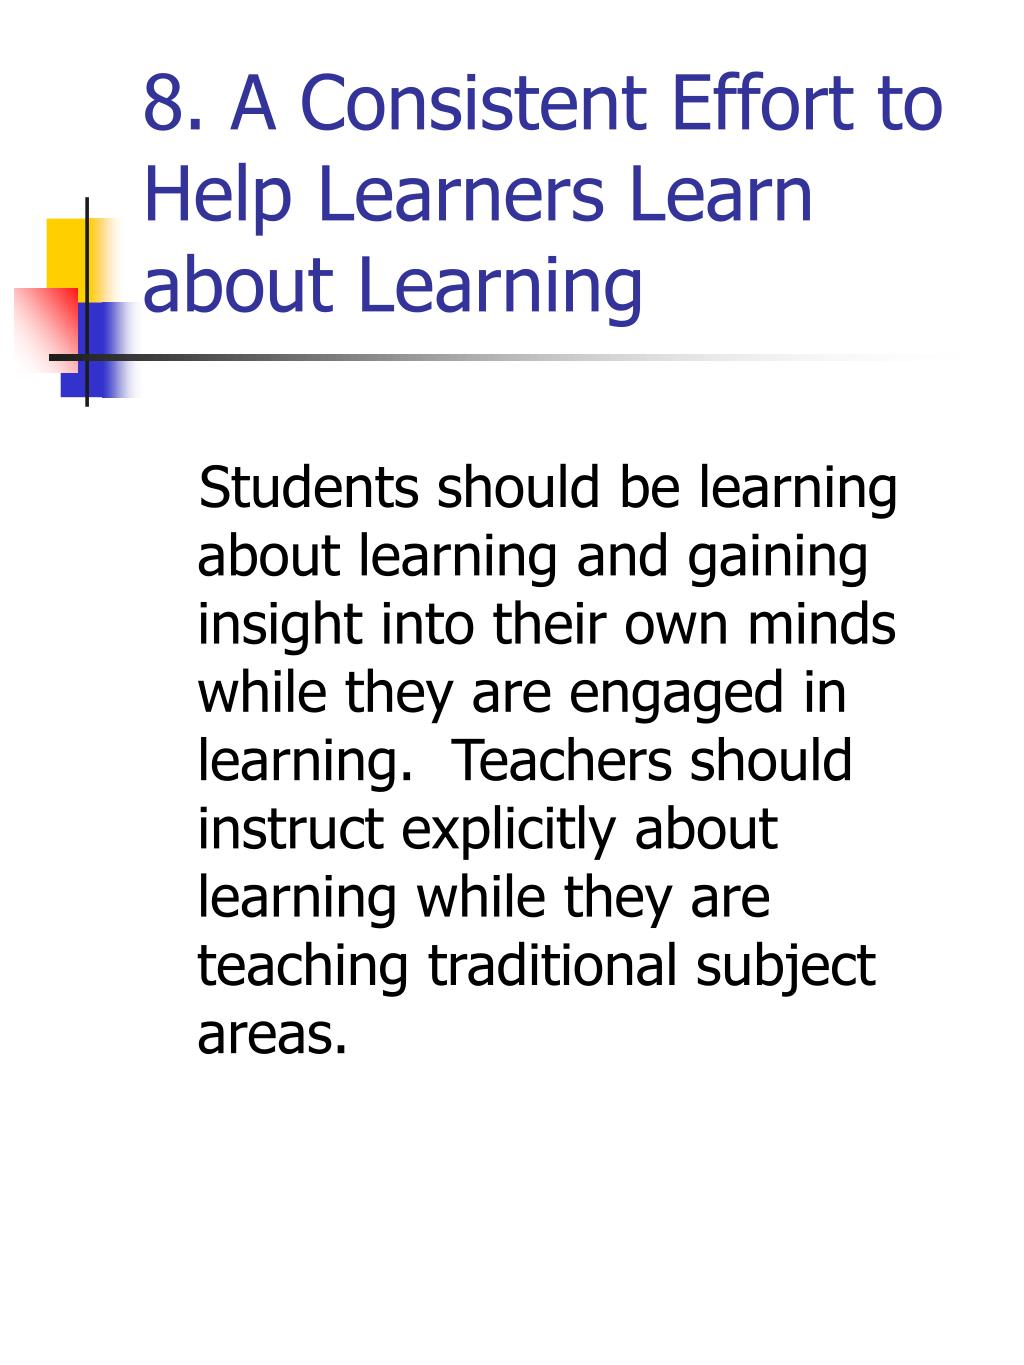 8. A Consistent Effort to Help Learners Learn about Learning